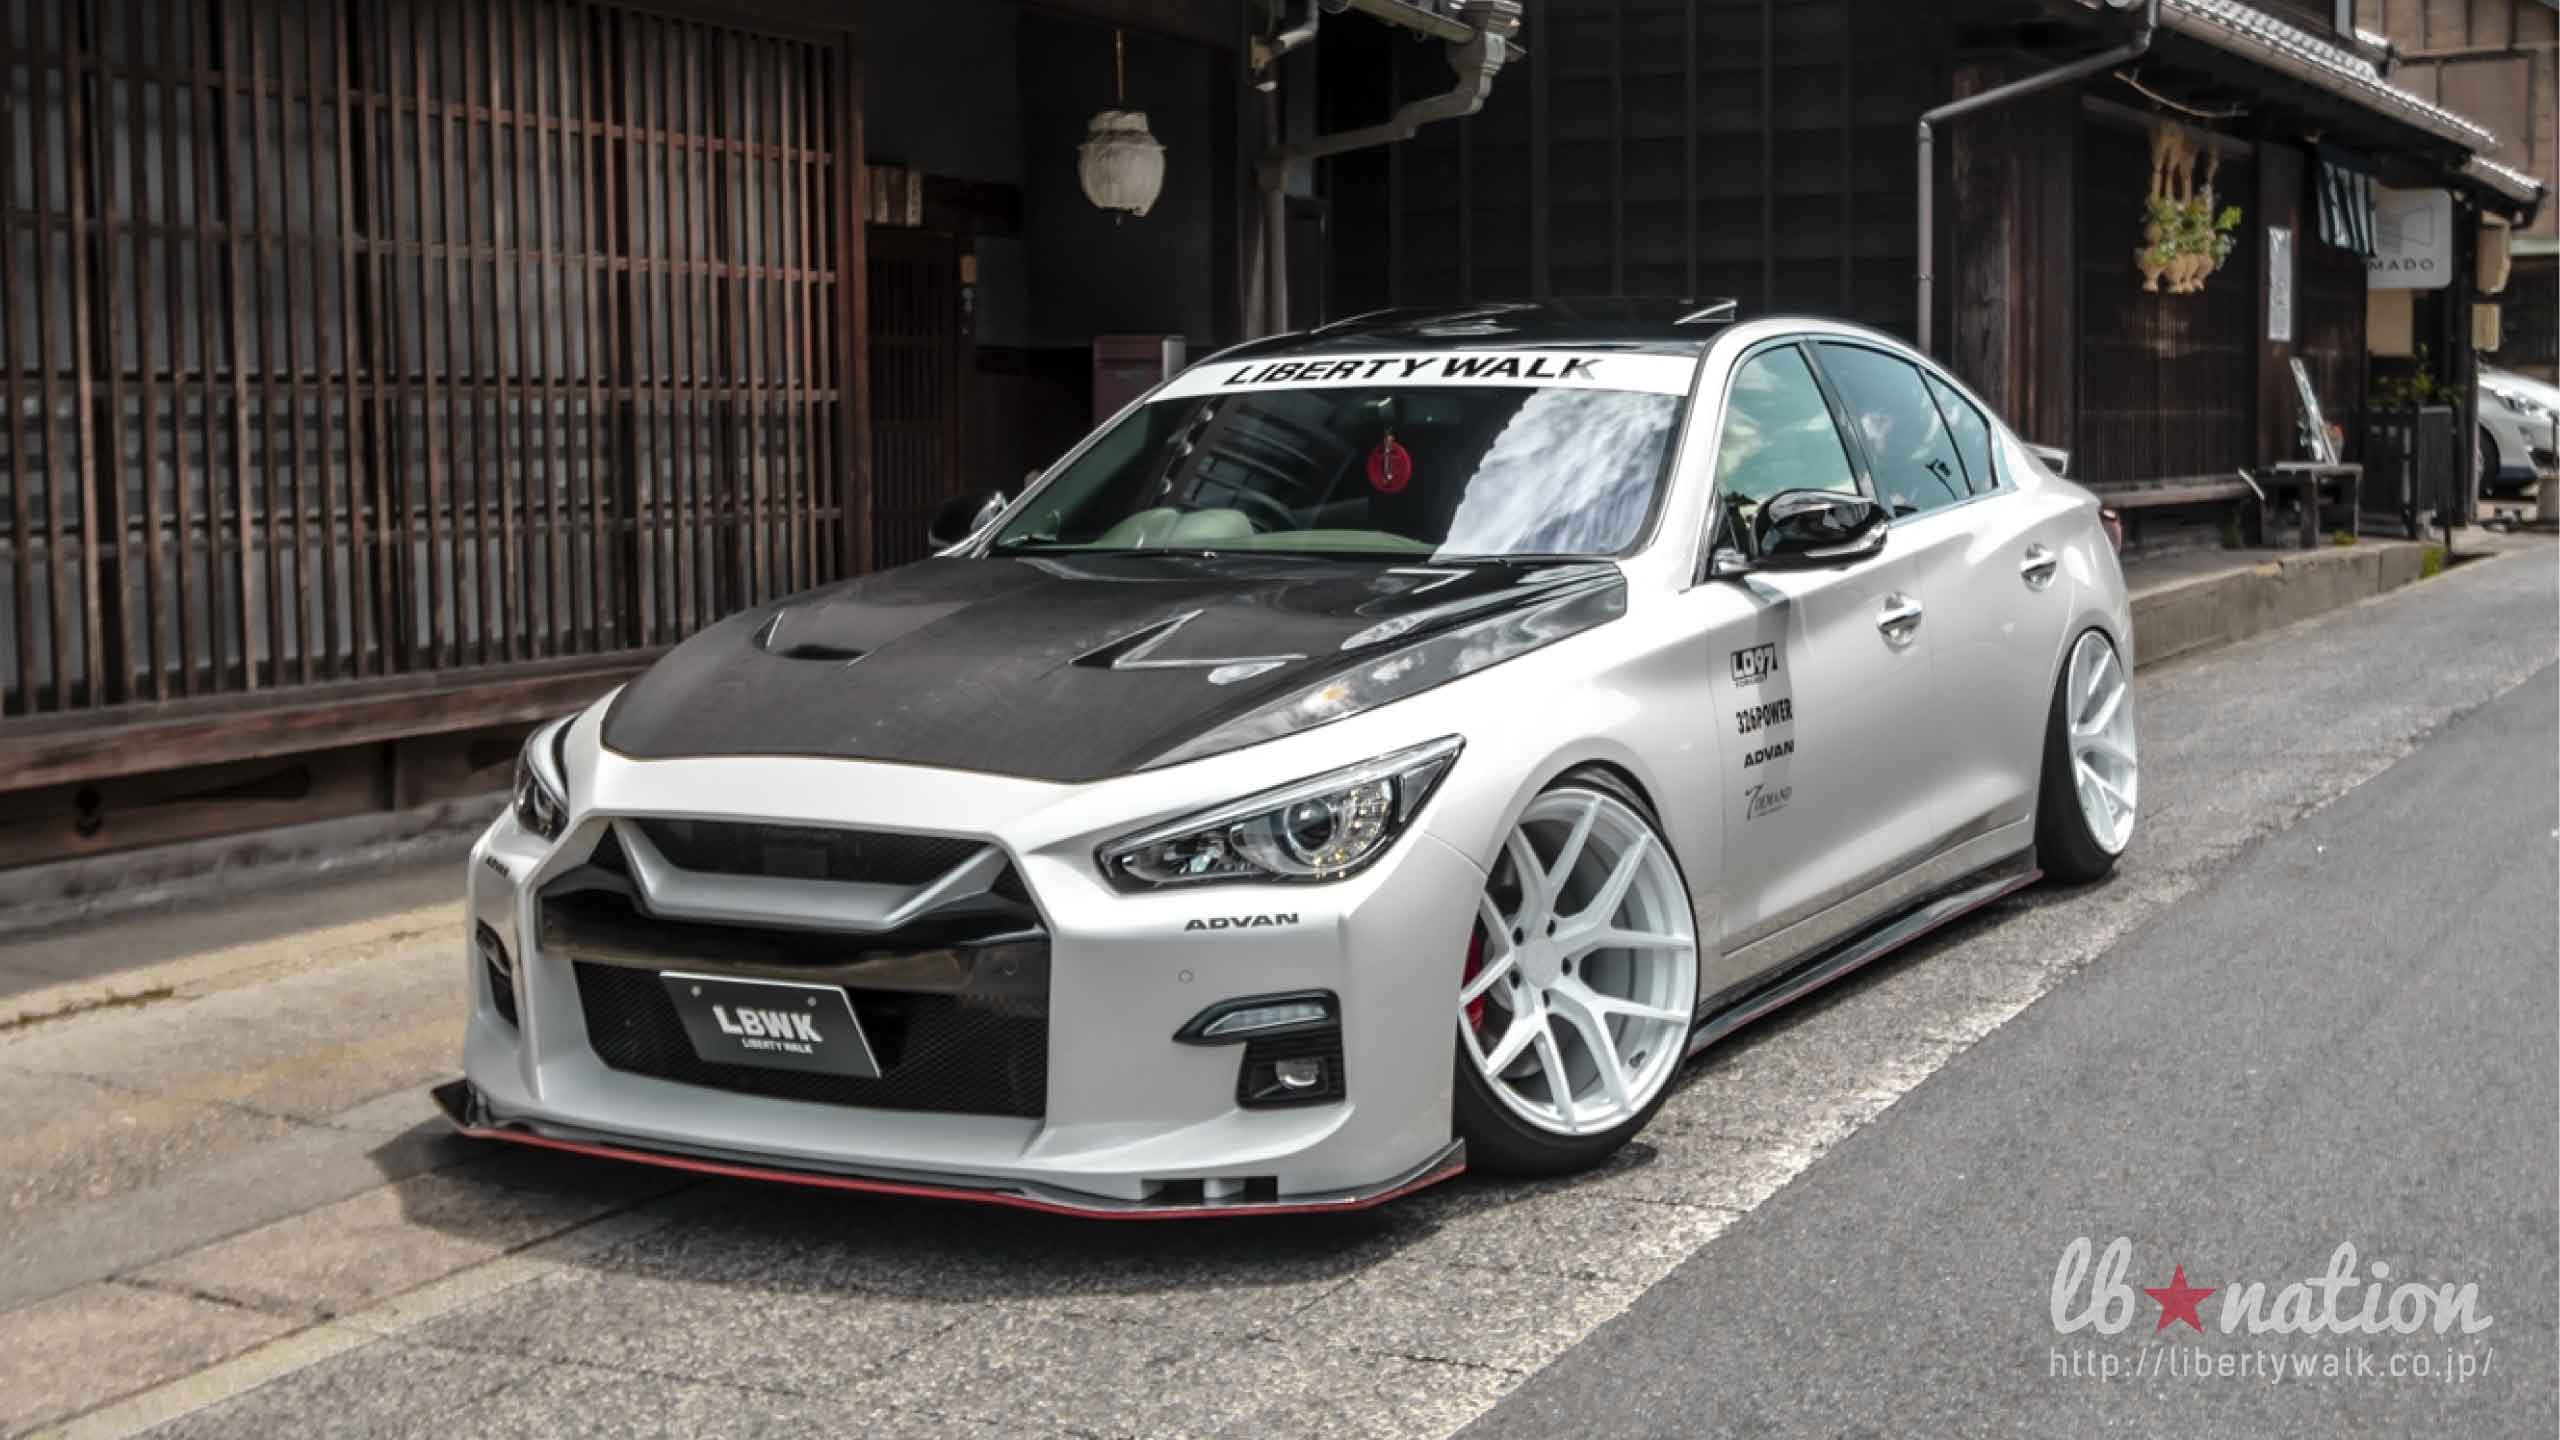 V37_6 lb★nation  NISSAN V37 SKYLINE / INFINITI Q50